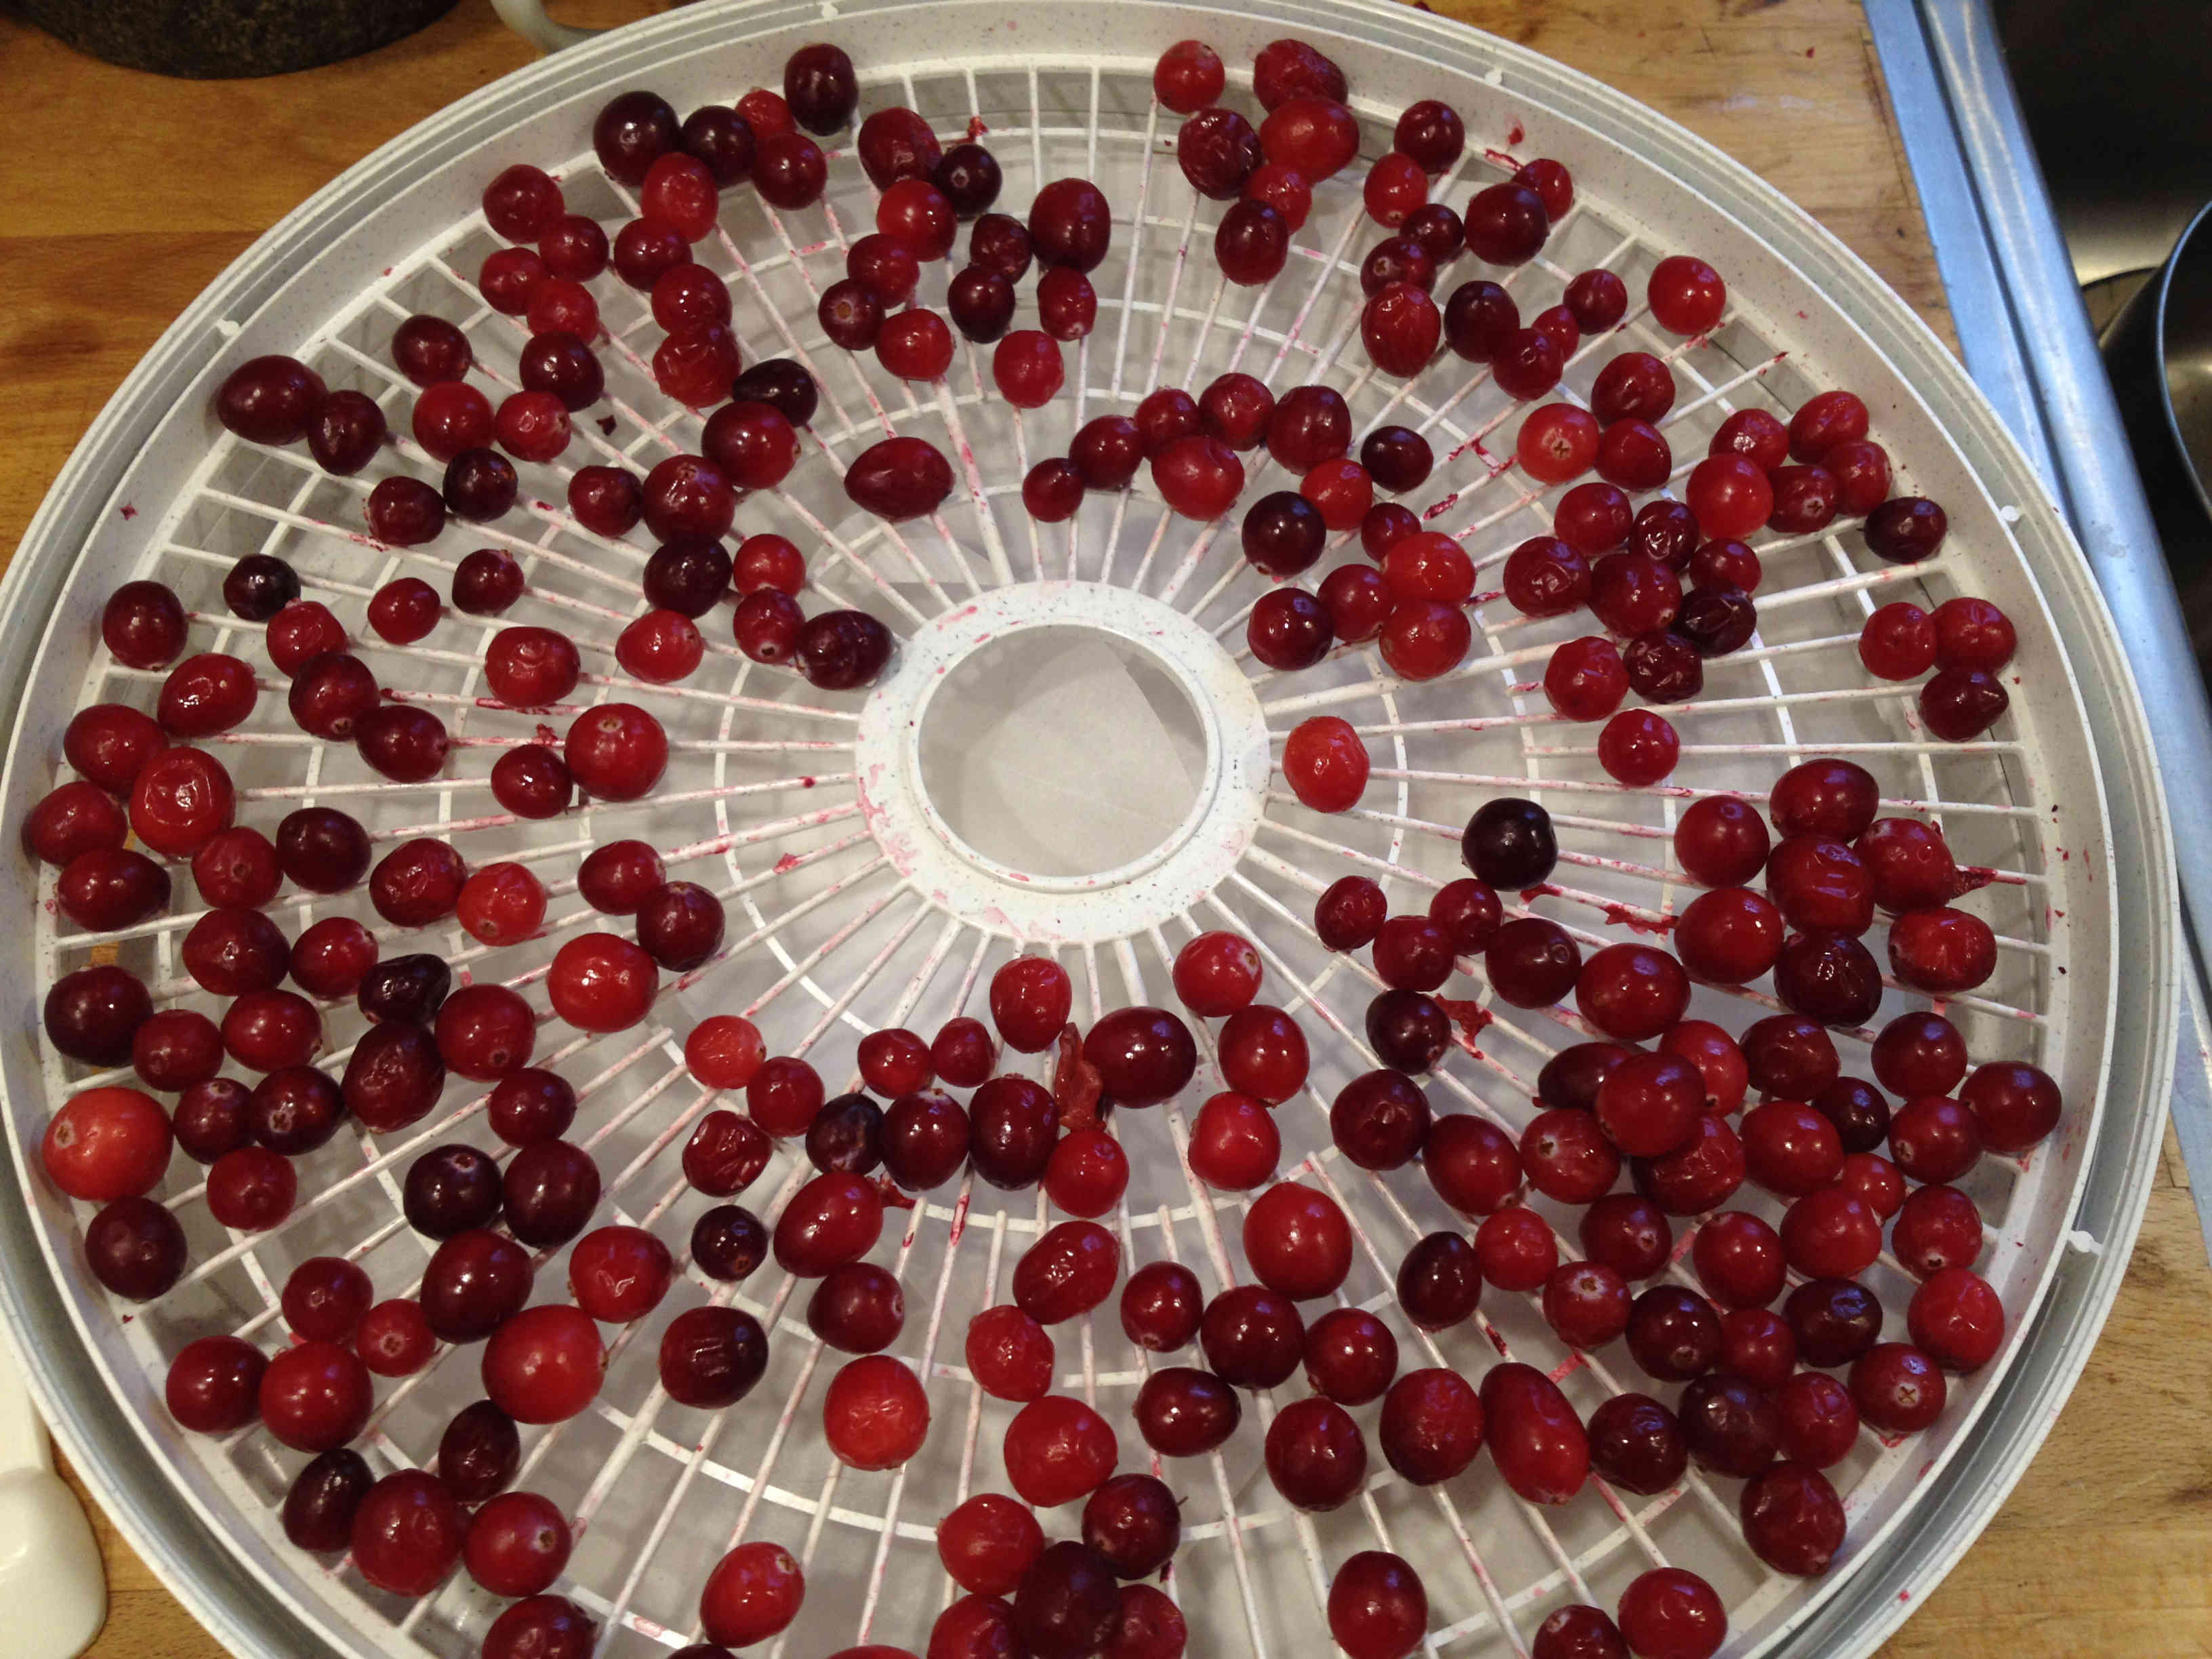 Whole Cranberries on tray